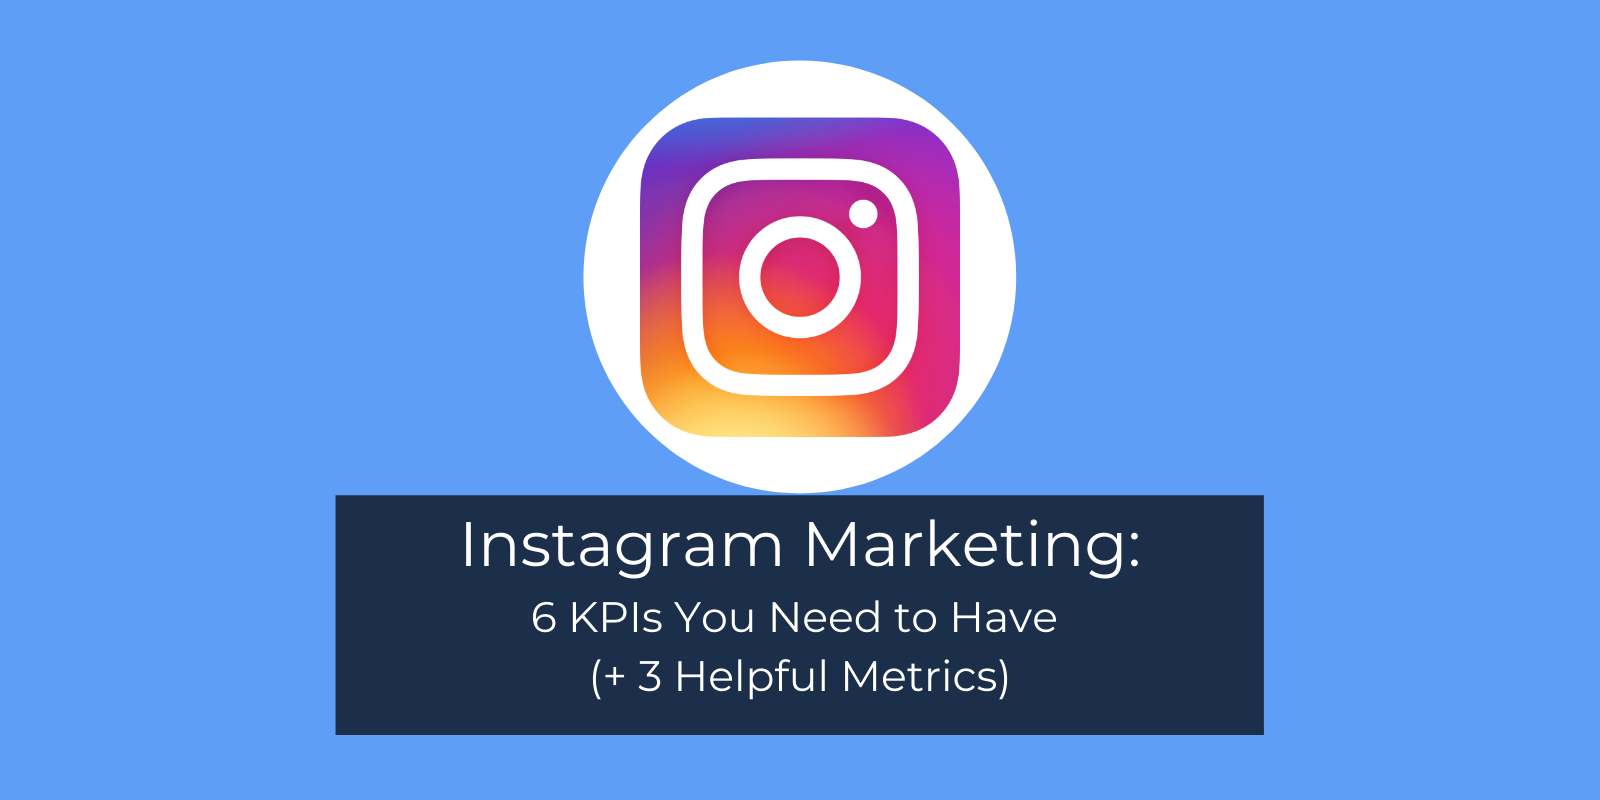 Instagram Marketing: 6 KPIs You Need to Have (+3 Helpful Metrics)